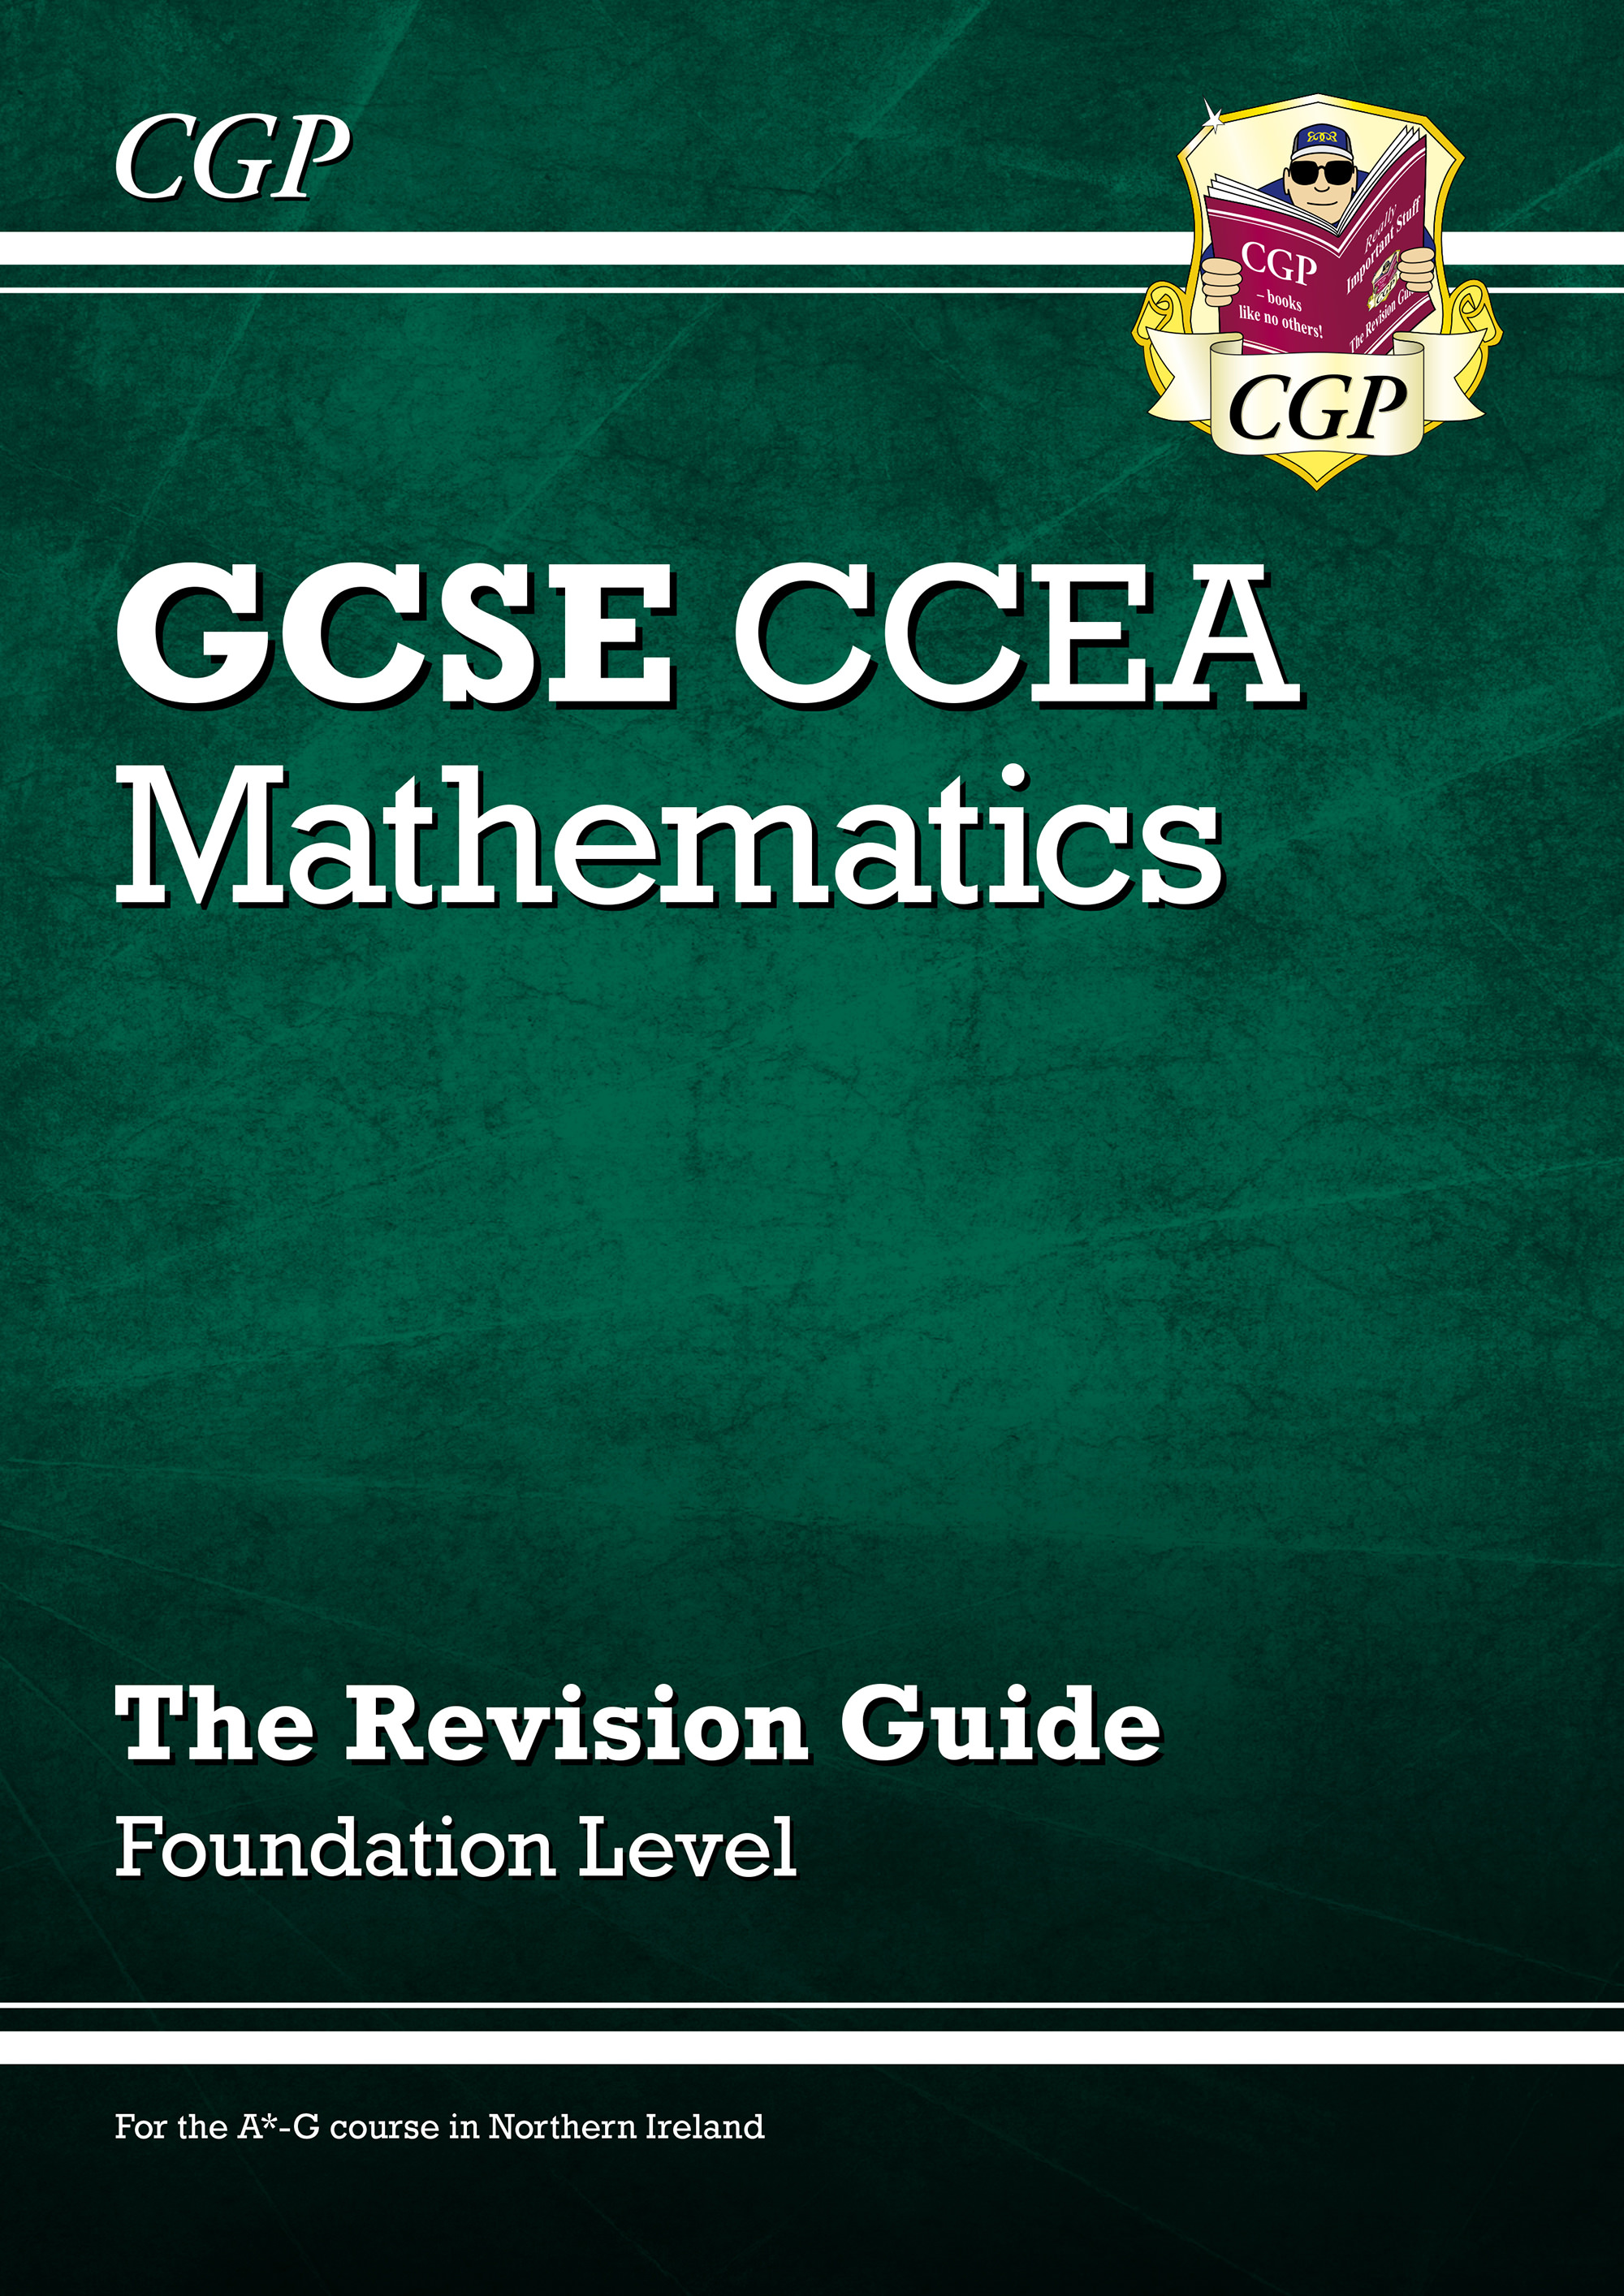 MCCFR41DK - New CCEA GCSE Maths Revision Guide: Foundation